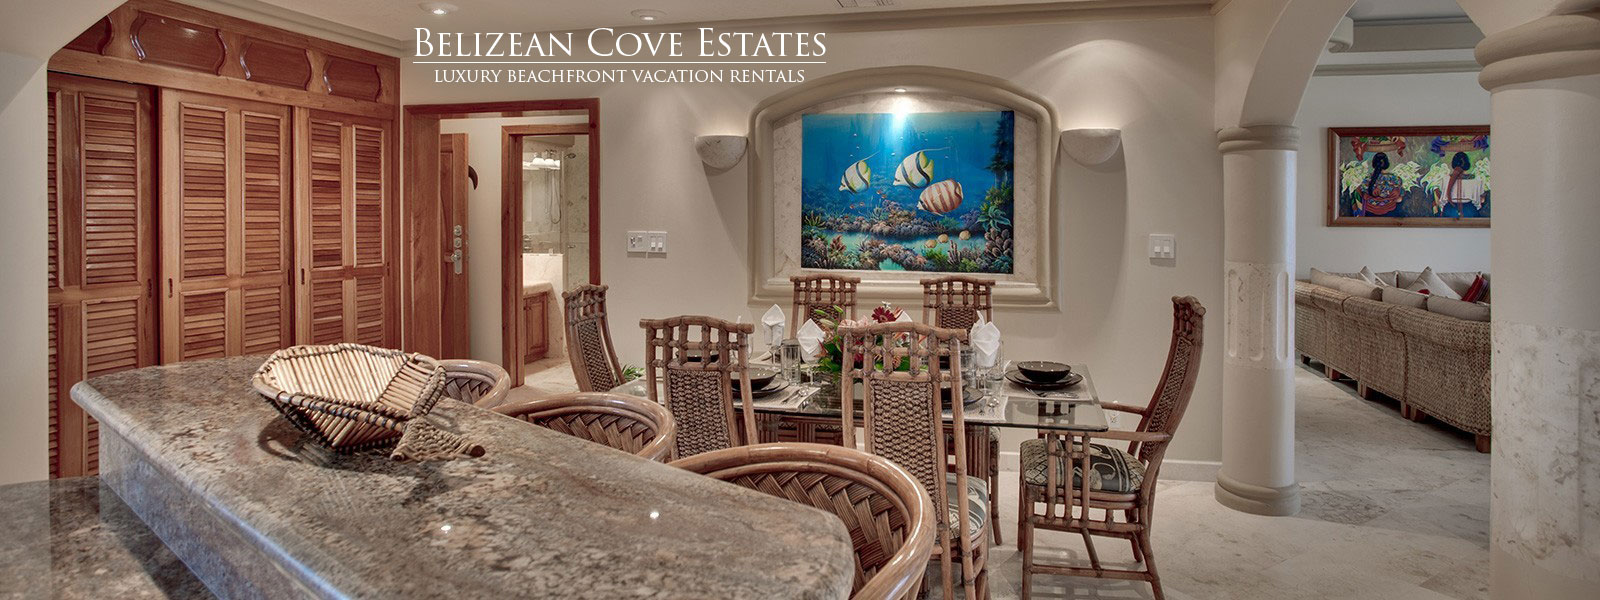 Luxury Vacation Rentals in Belize at Belizean Cove Estates